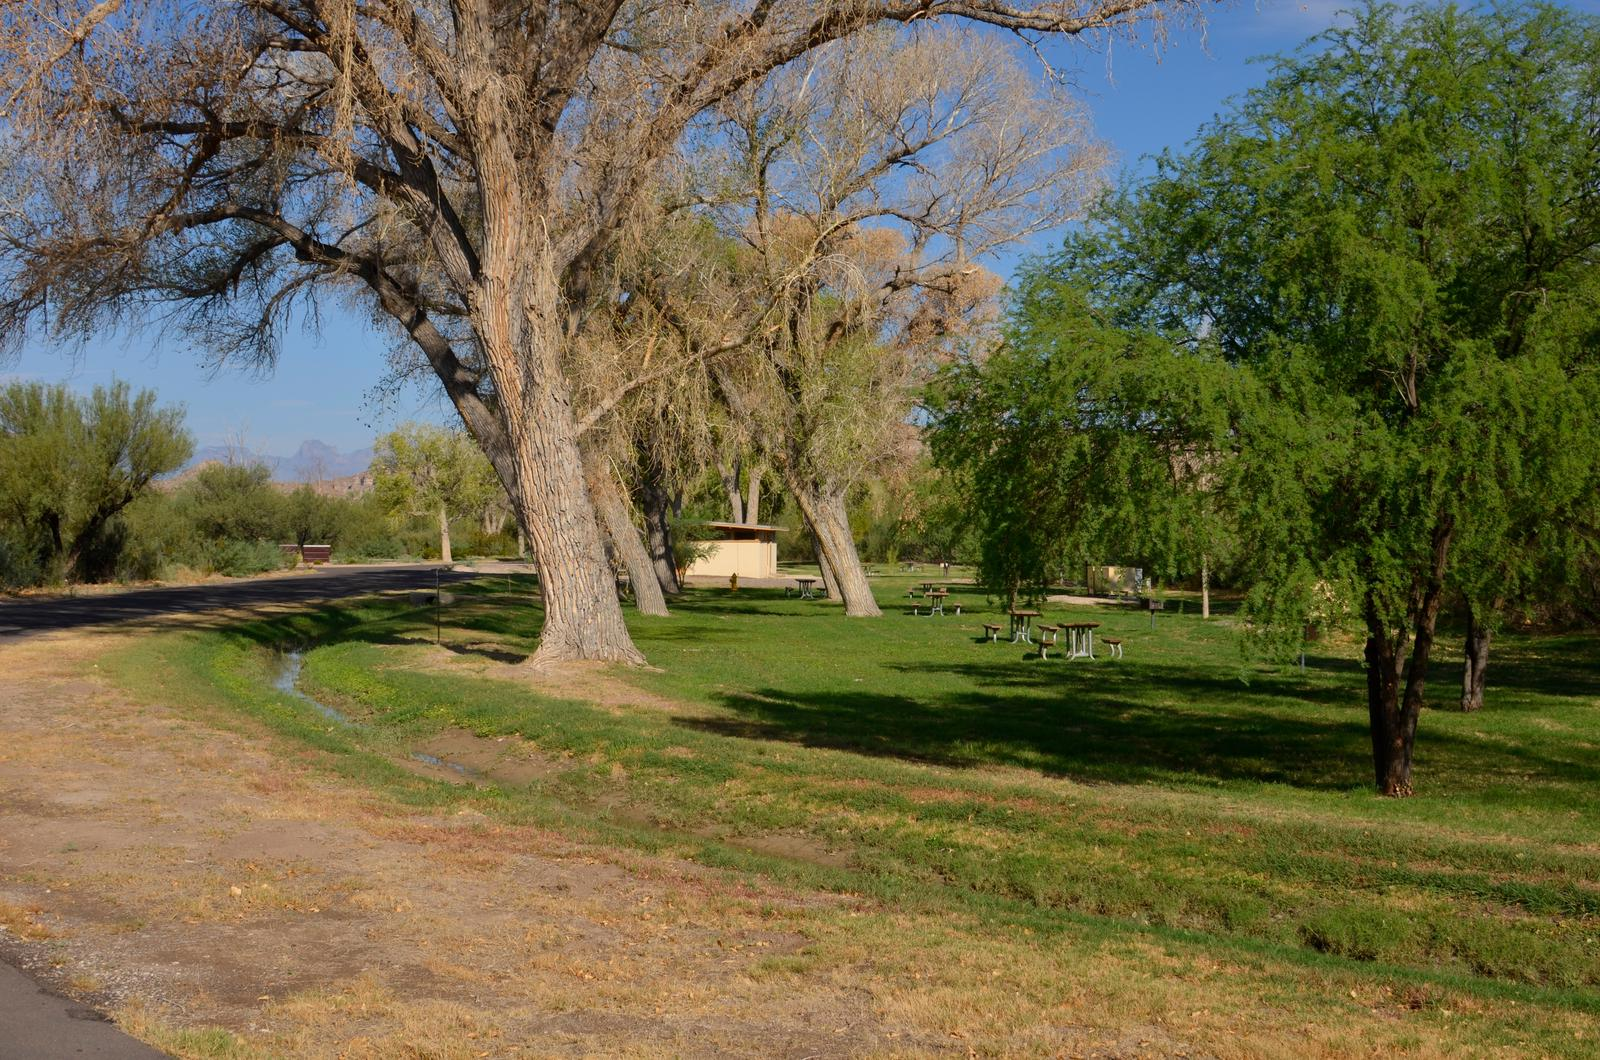 Tree-lined campsite with flat, grassy areas